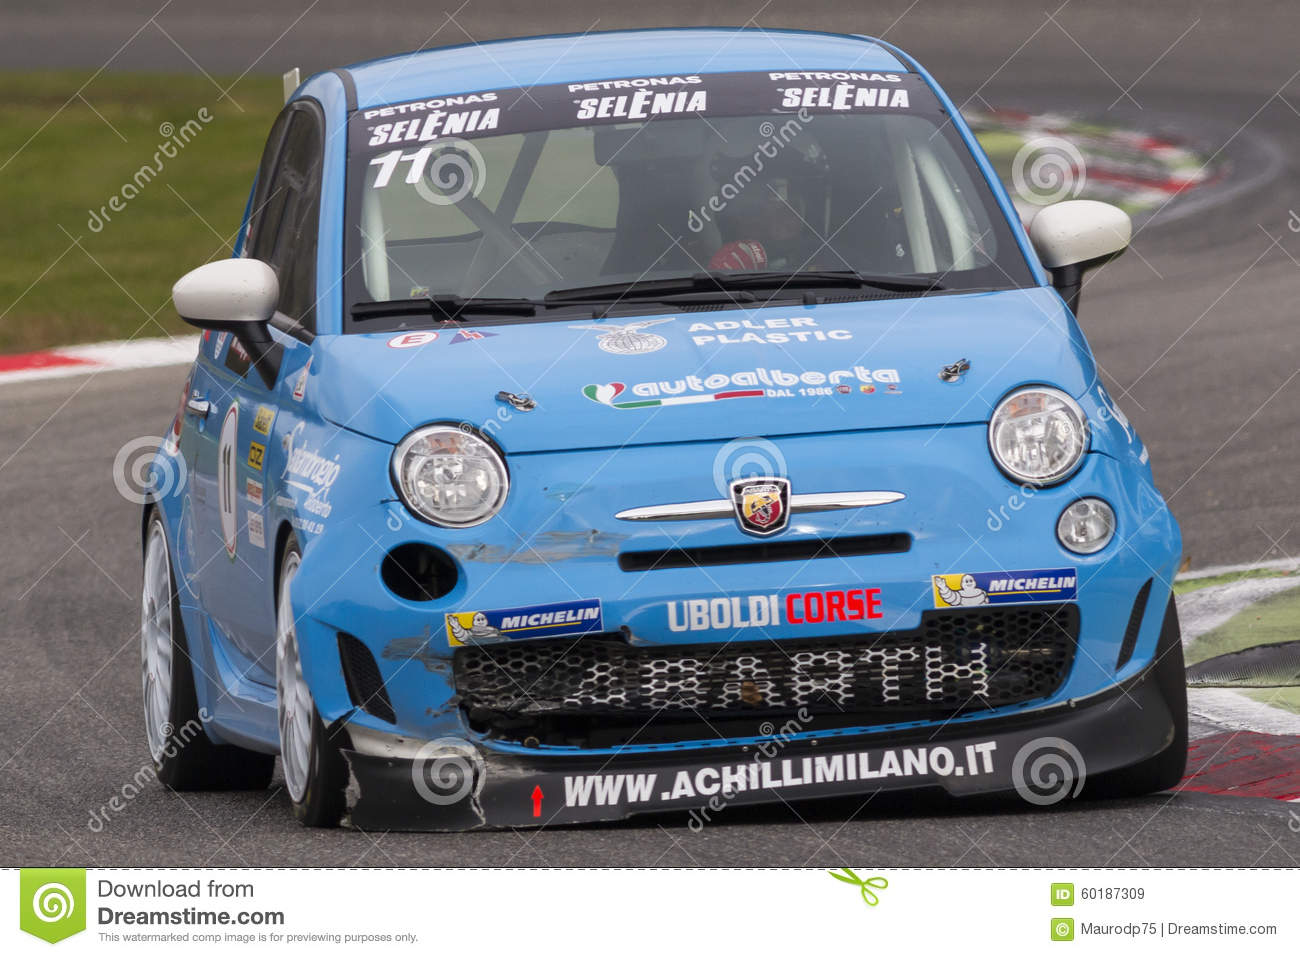 Abarth Italy & Europe Trophy Editorial Stock Image - Image of fast